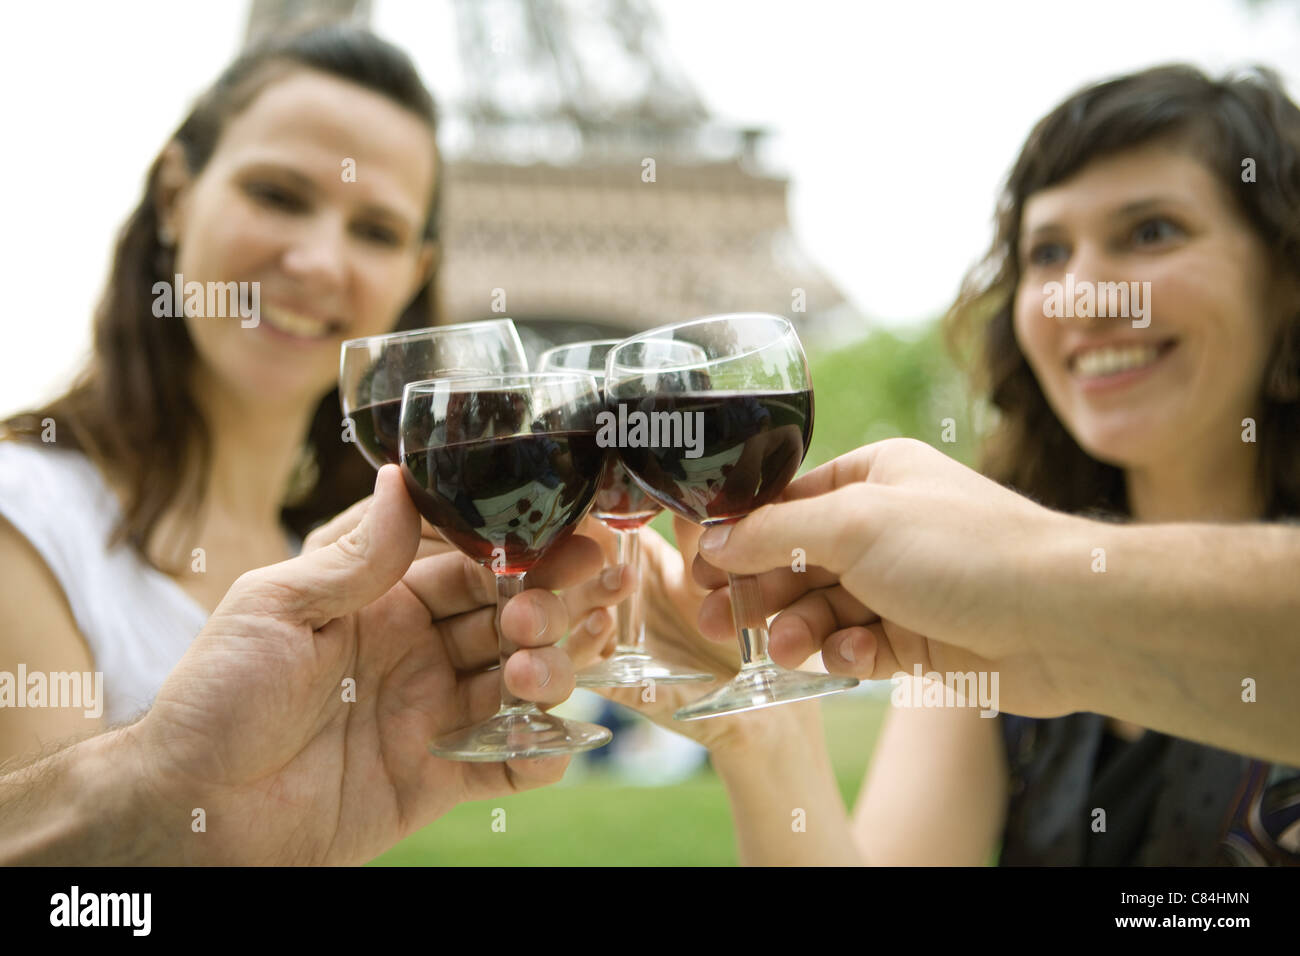 Friends clinking wine glasses outdoors - Stock Image